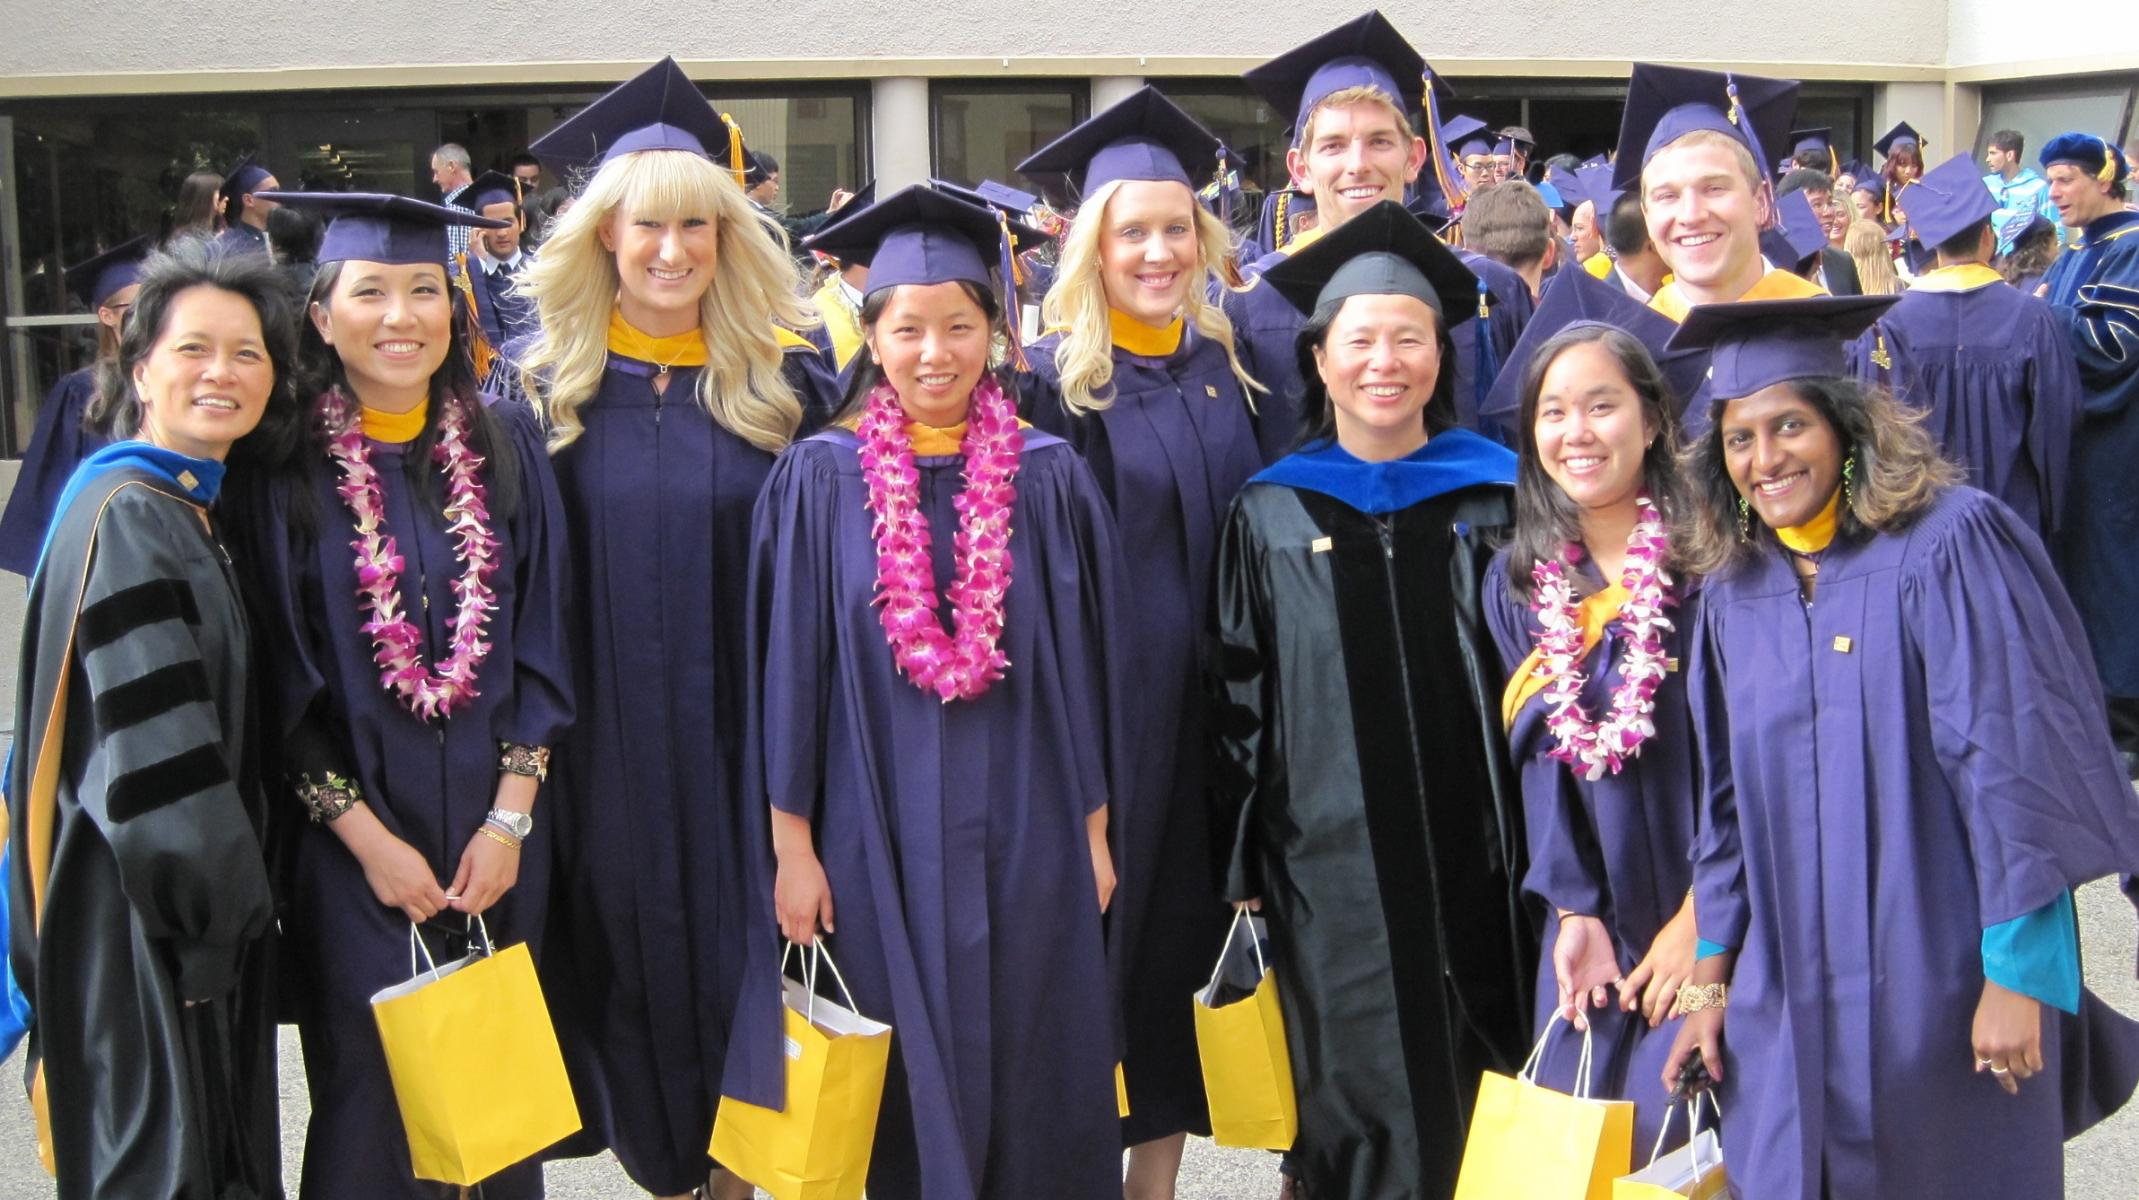 Cohort 2 Graduates at Biology graduation ceremony May 2013